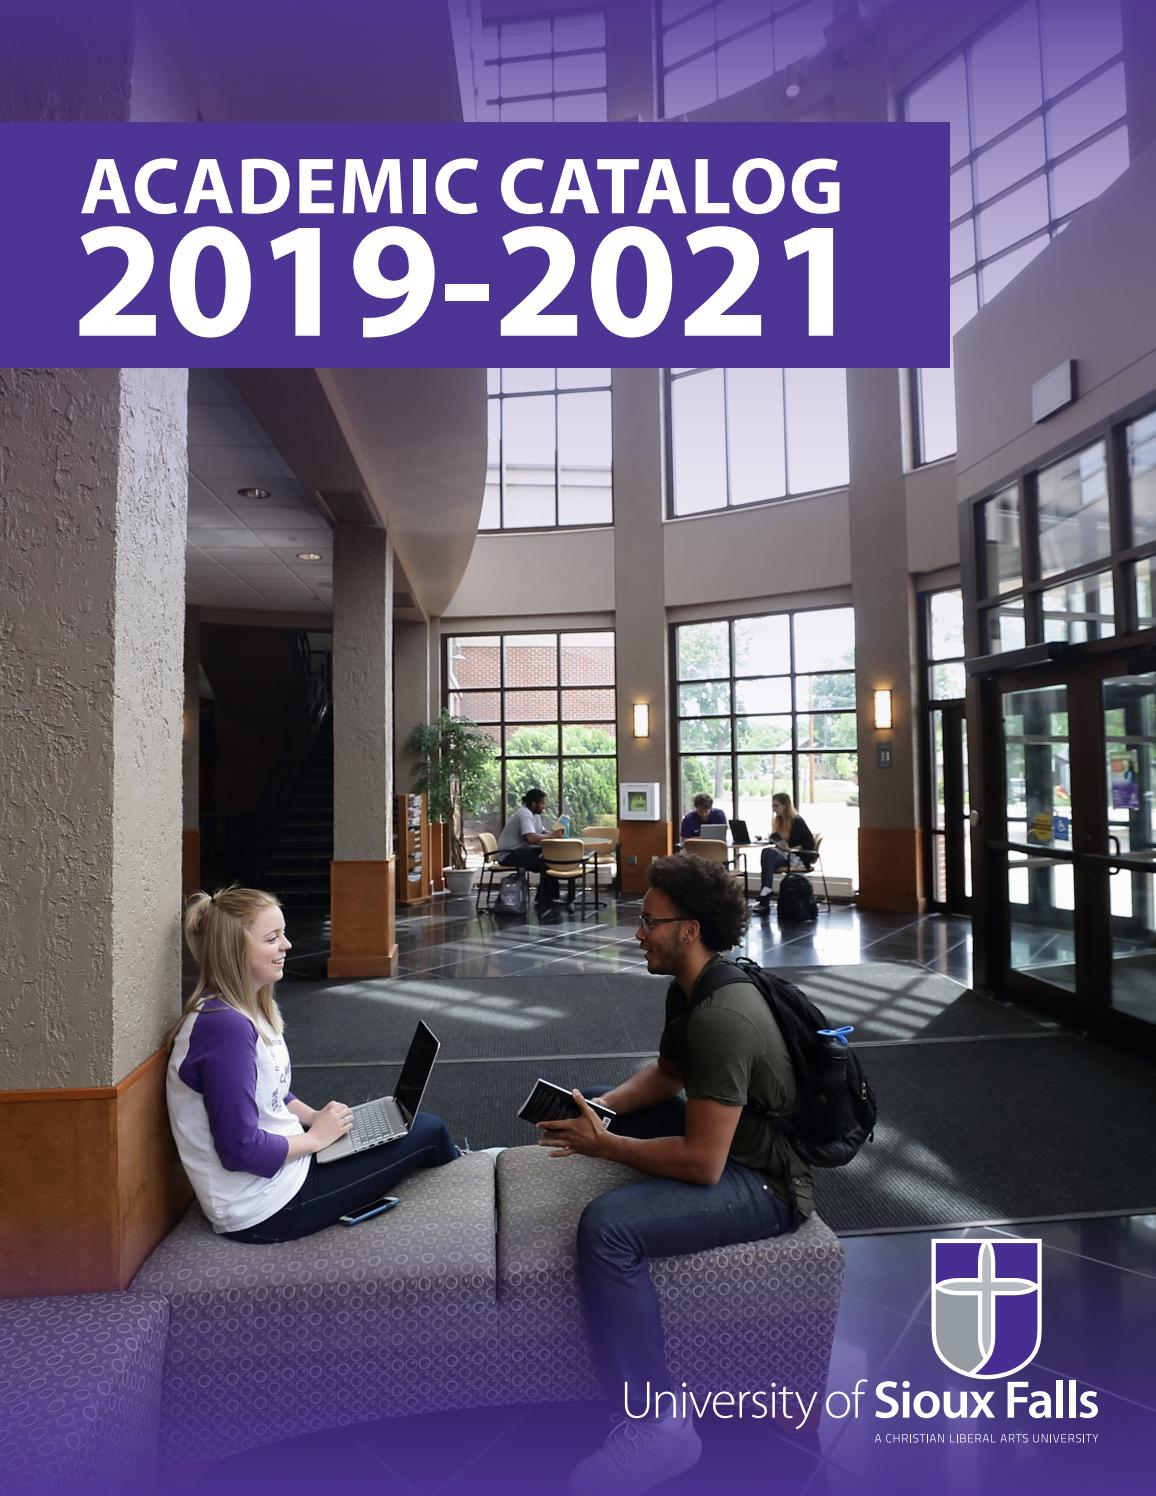 2019-2021 USF Academic Catalog by University of Sioux Falls